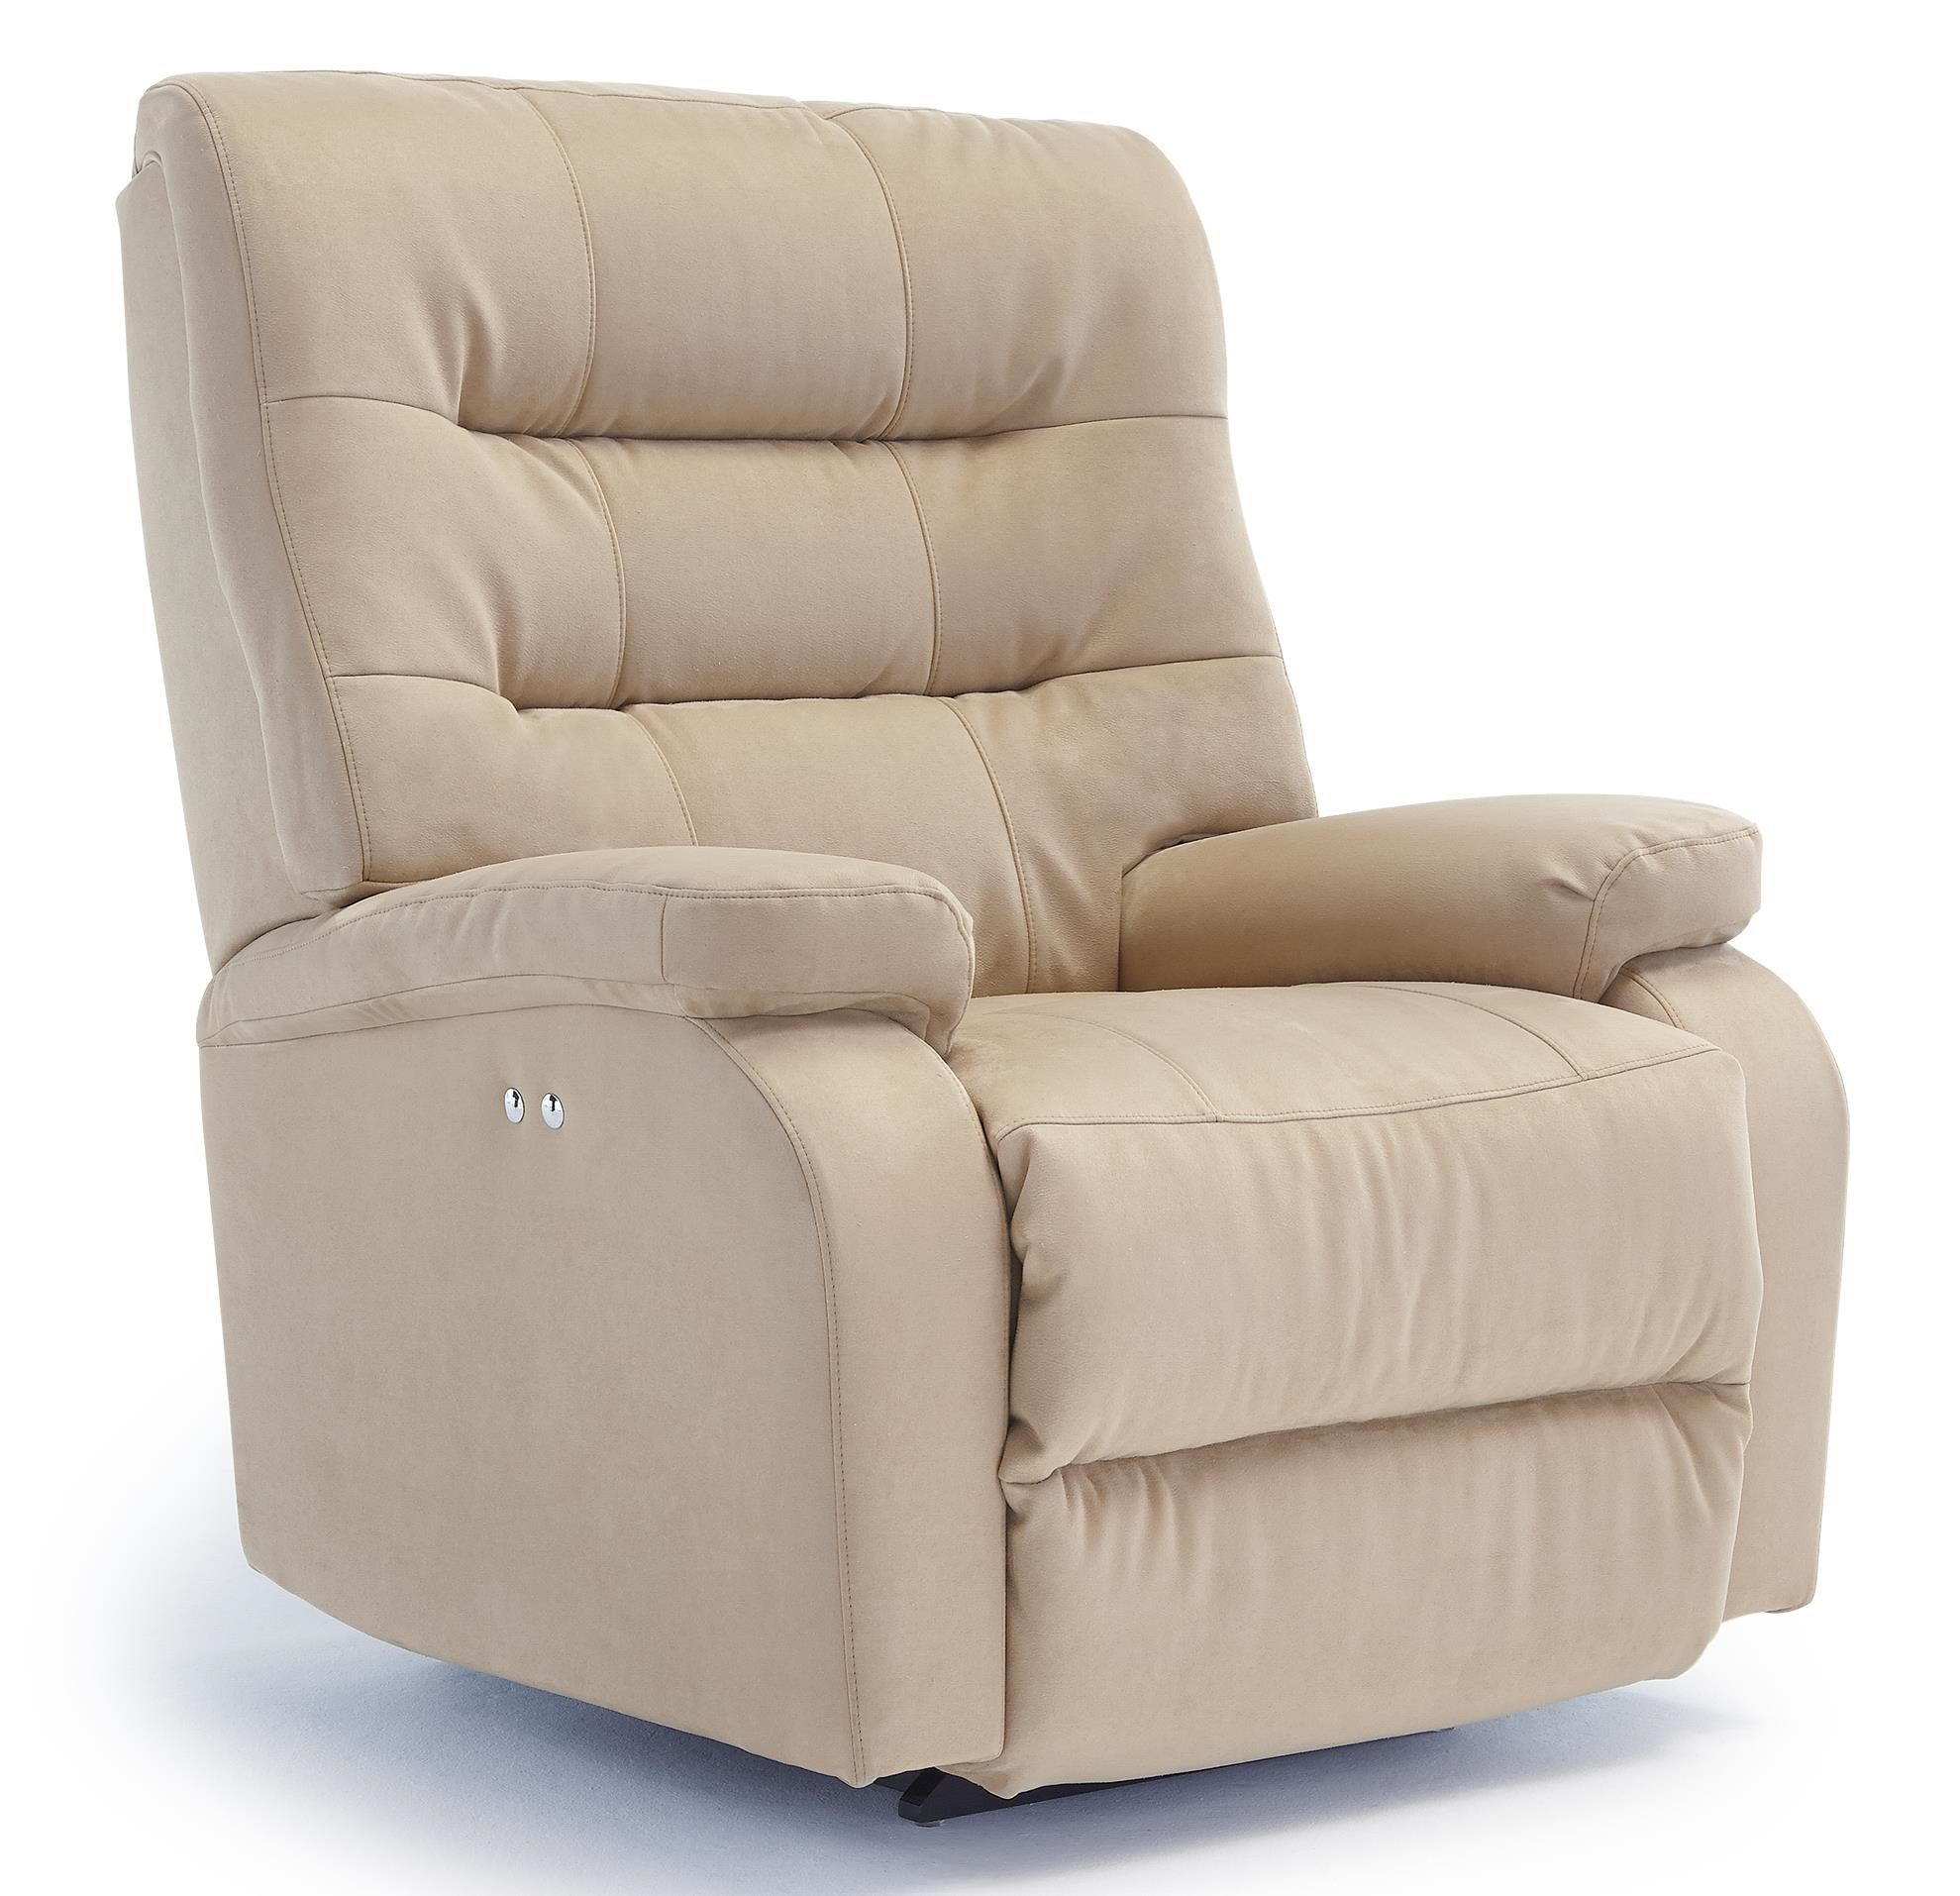 Swivel rocker recliner full size of recliners reclining for At home designs recliner